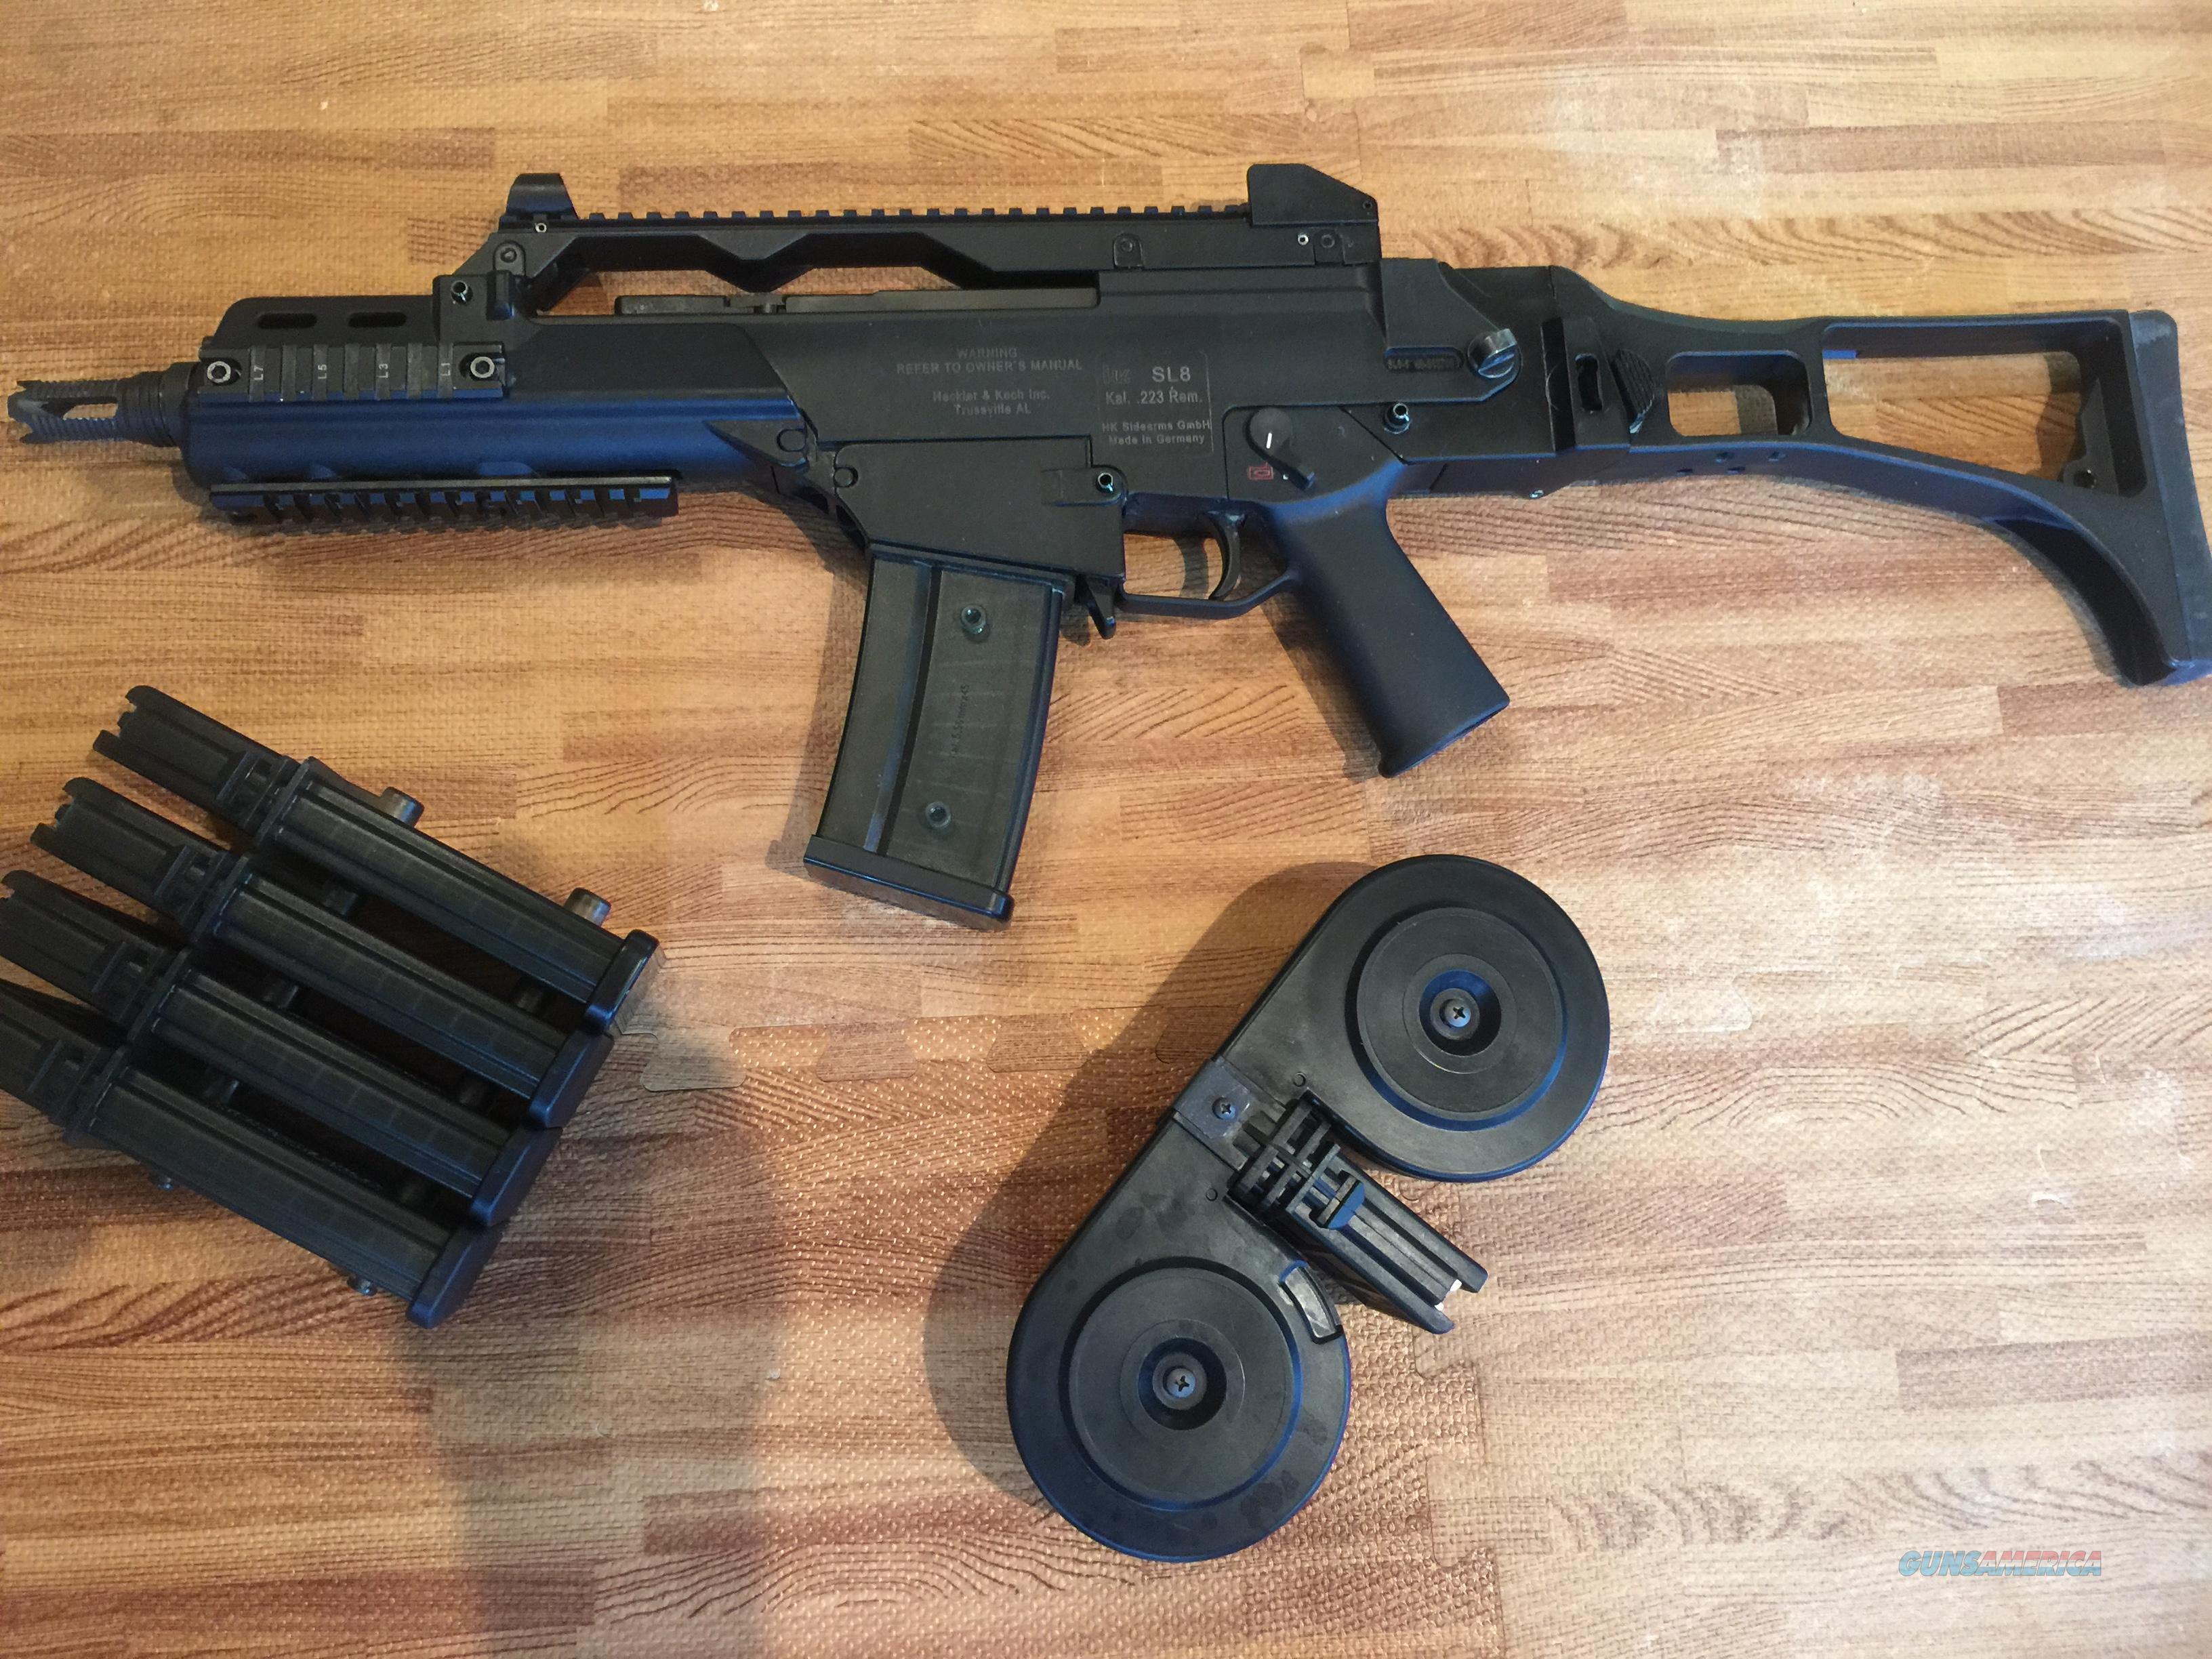 SL8 to H&K G36 conversion